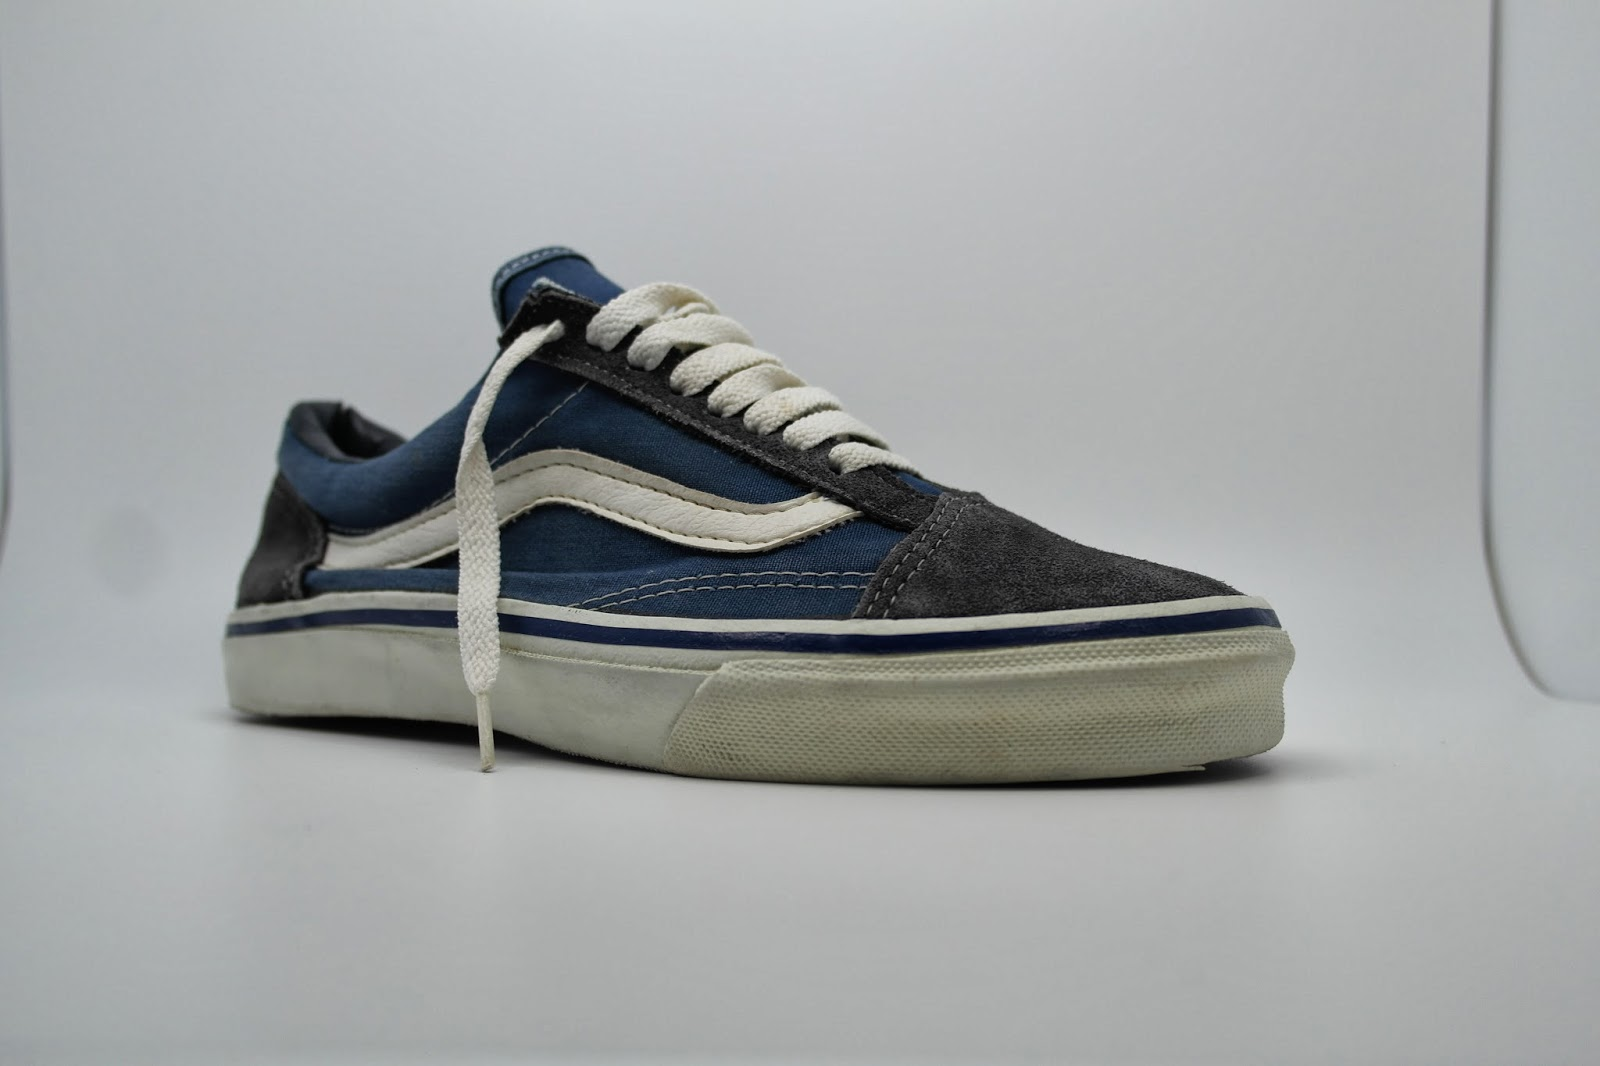 theothersideofthepillow vintage vans style 36 old skool navy suede canvas made in usa 90s. Black Bedroom Furniture Sets. Home Design Ideas